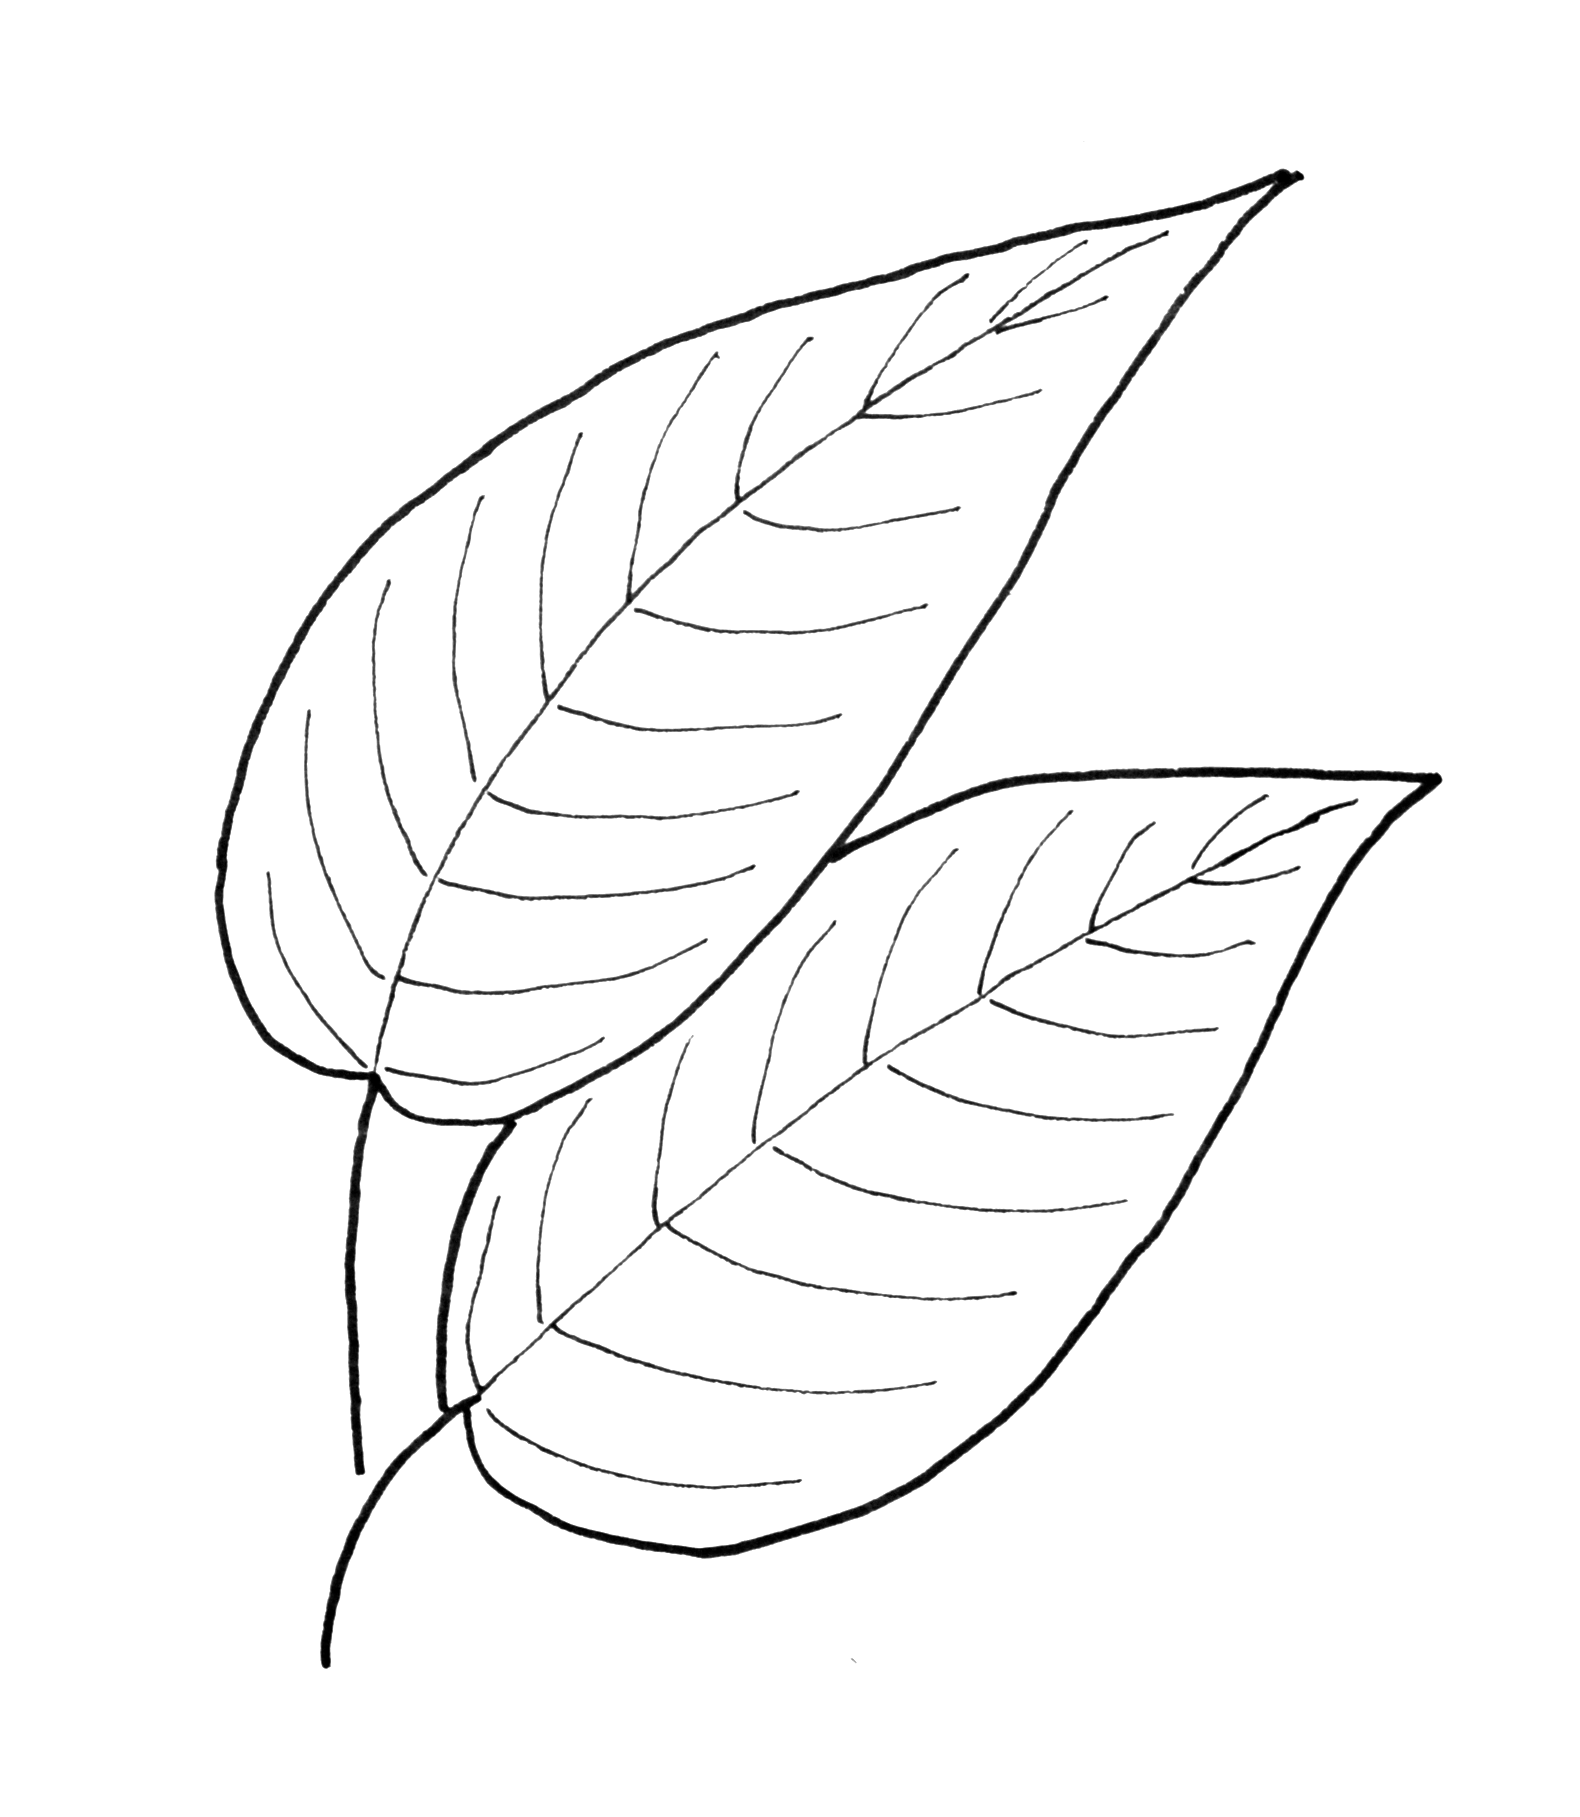 simple leaf drawing at getdrawings com free for personal use simple leaf drawing of your choice flower vine clip art pics flower vine clip art black and white